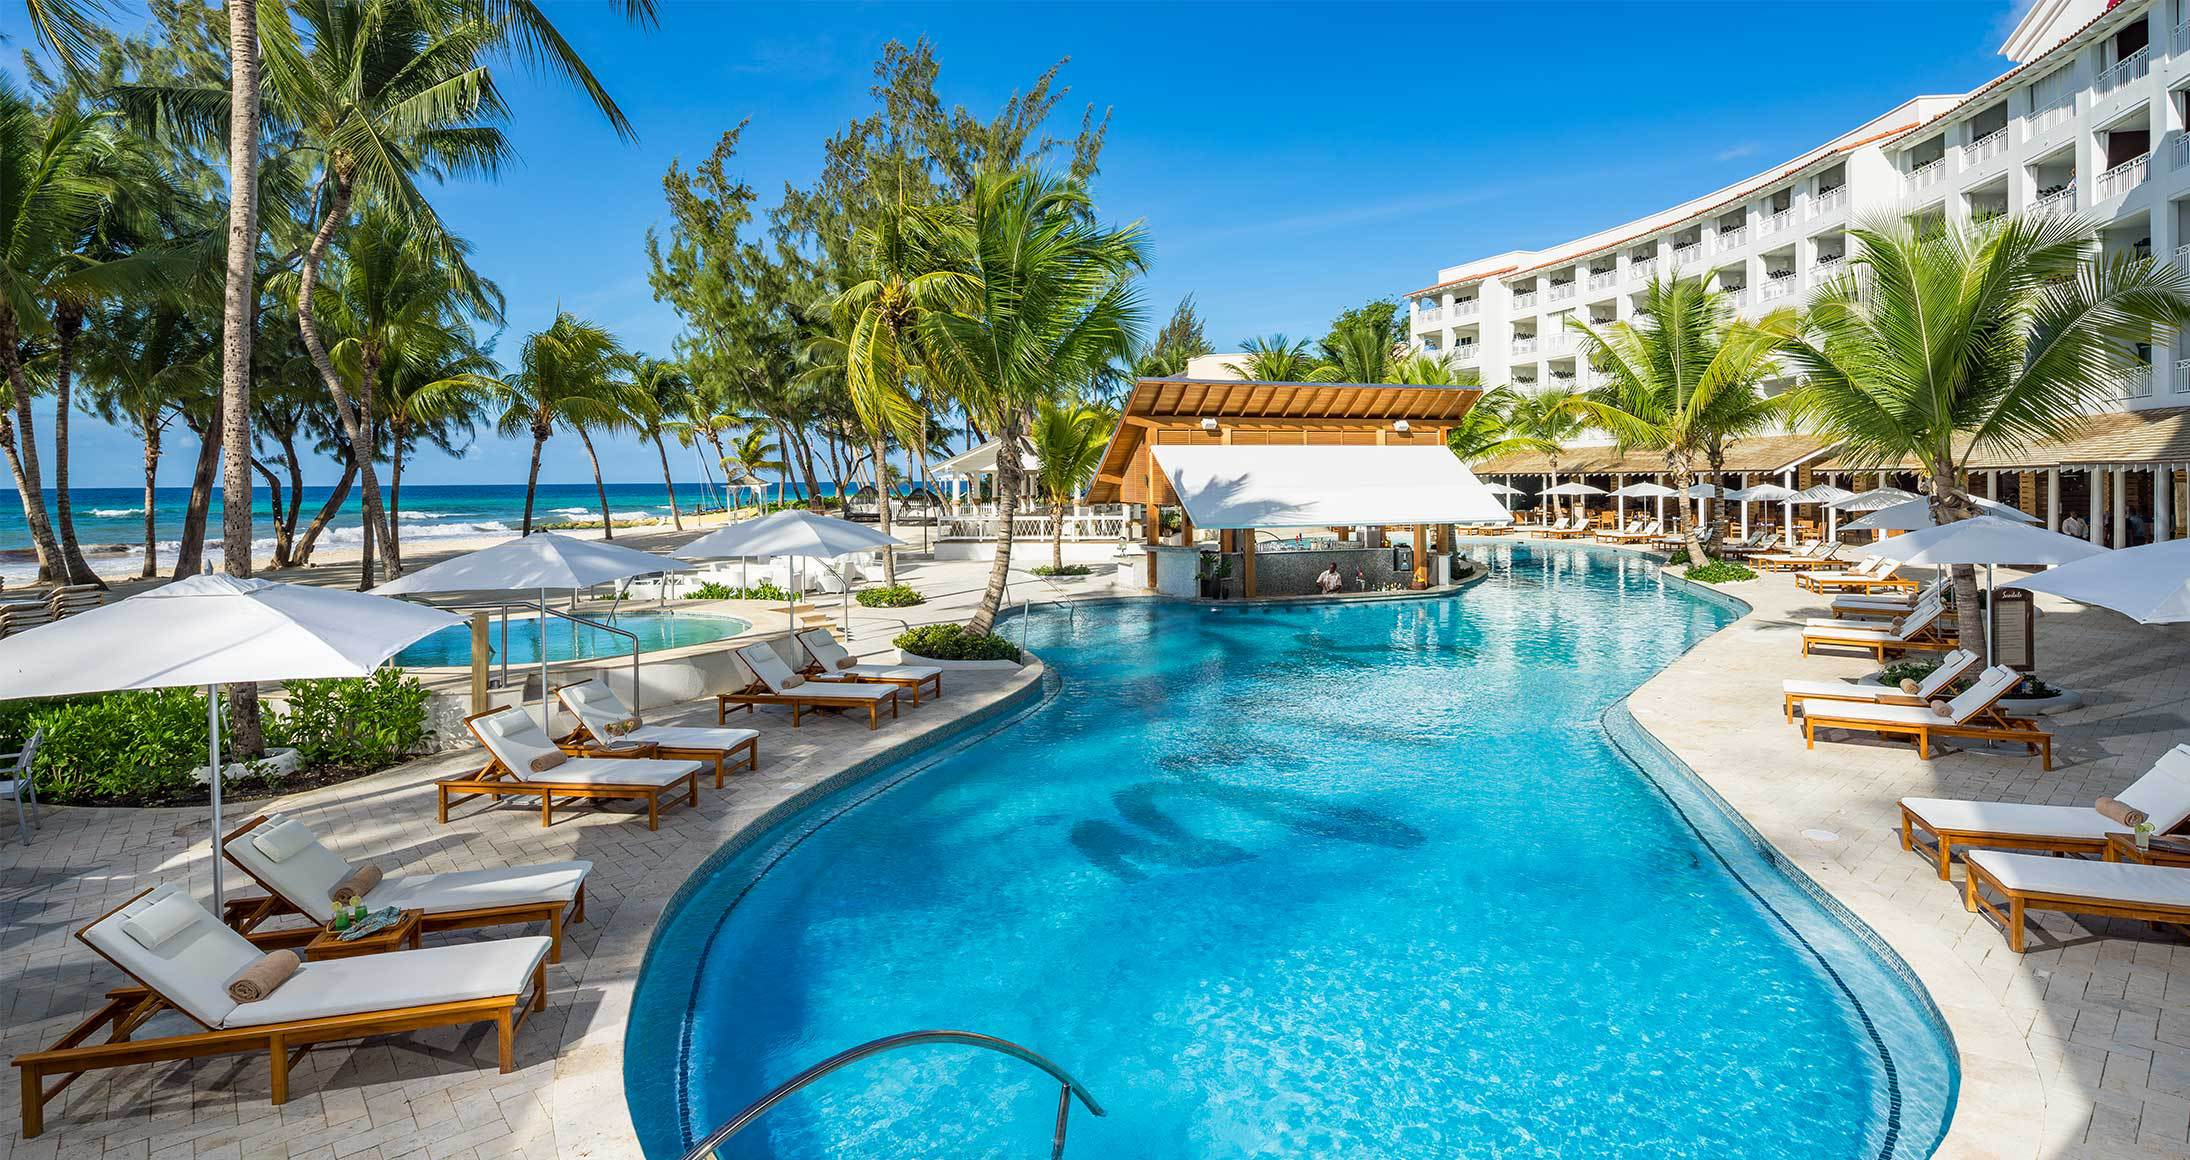 2e72675f63e4 Sandals Barbados - All-Inclusive Luxury Resort in St. Lawrence Gap